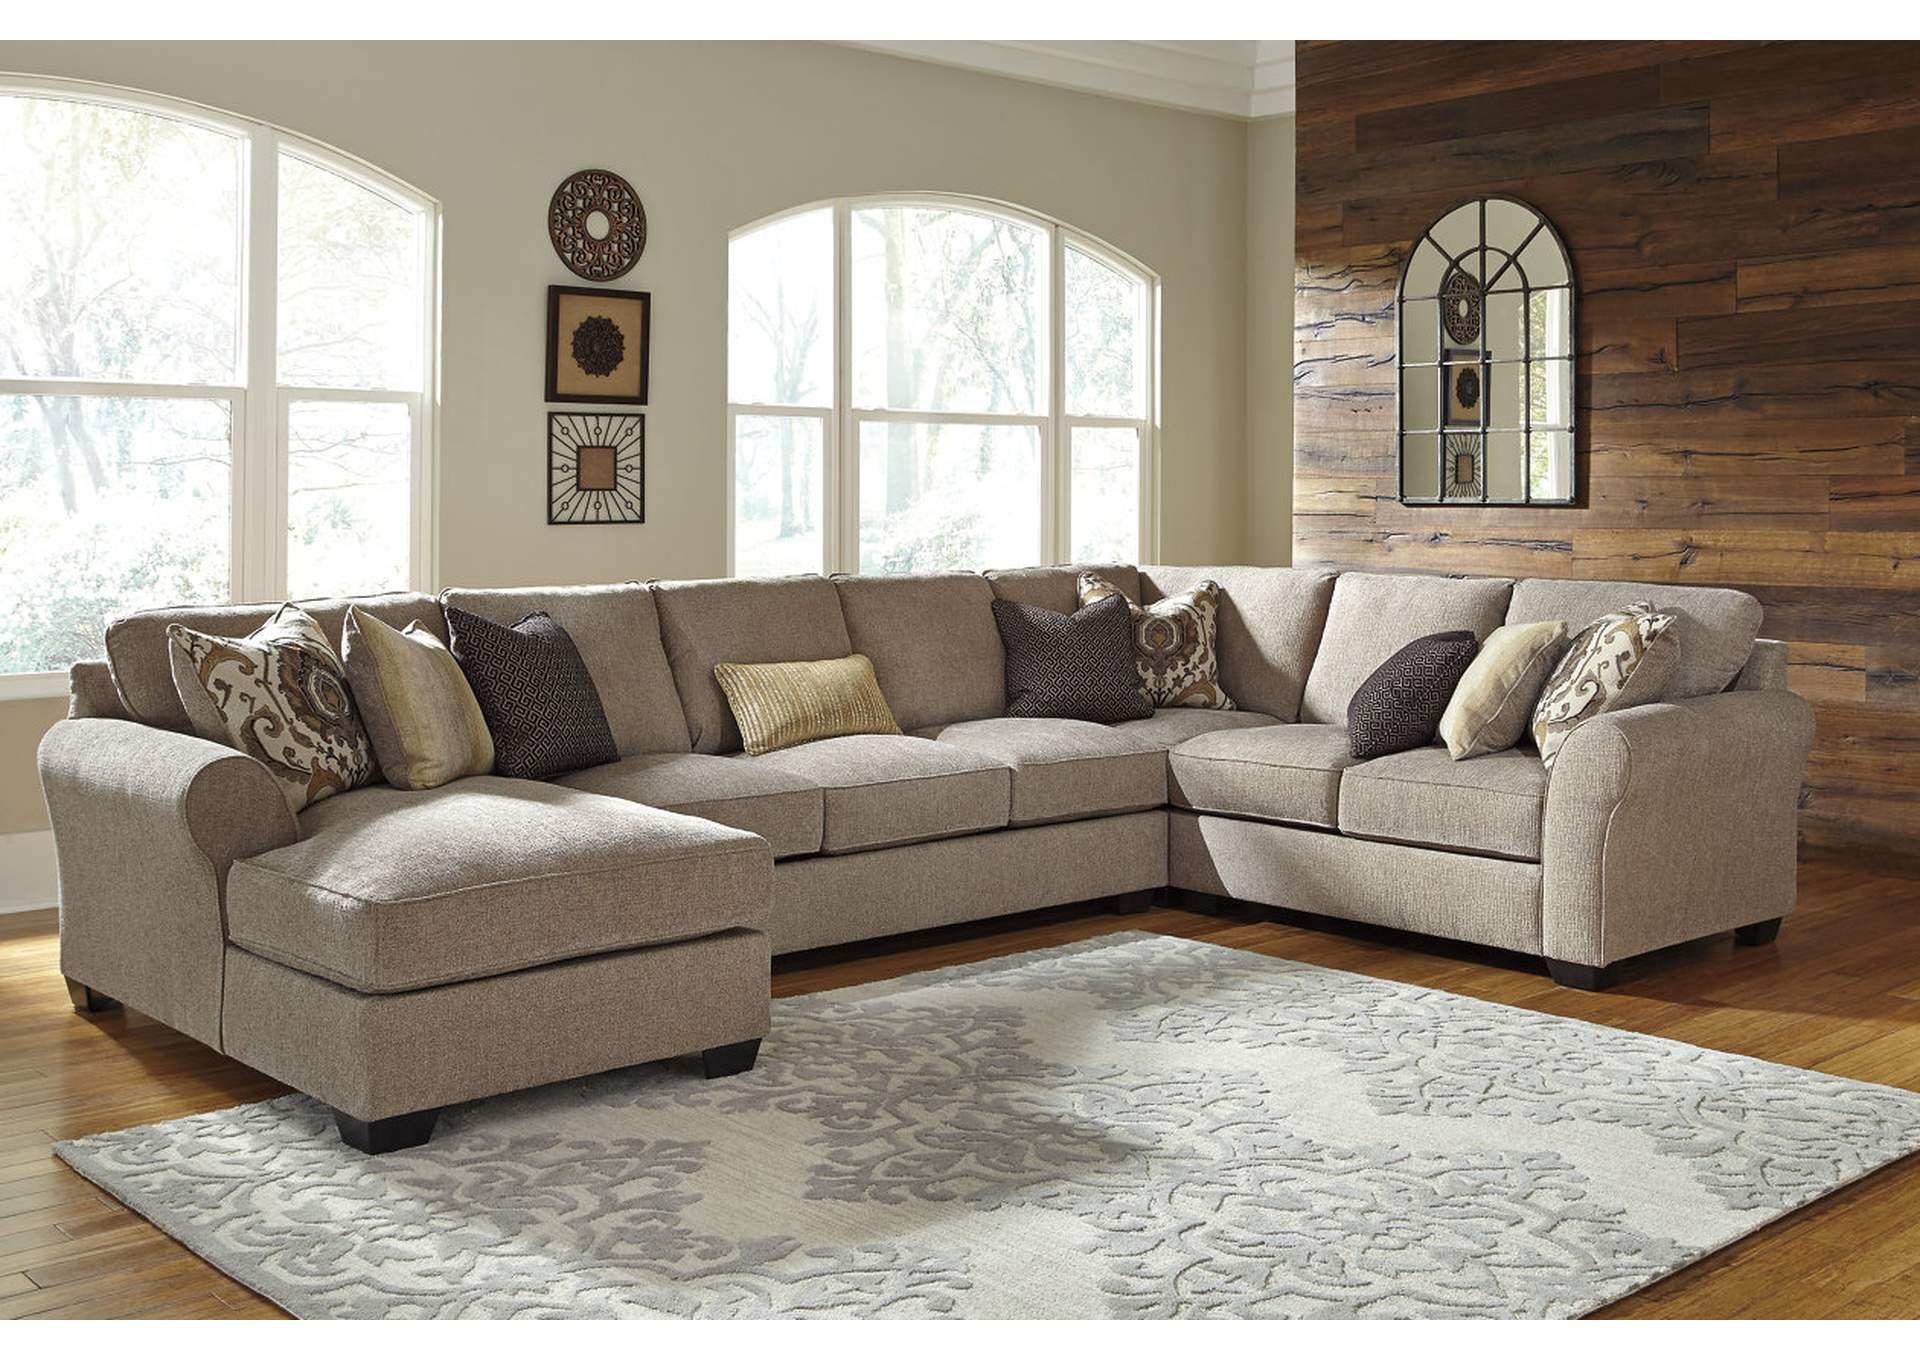 Pantomine Driftwood Sectional w/Left Facing Corner Chaise,ABF Benchcraft